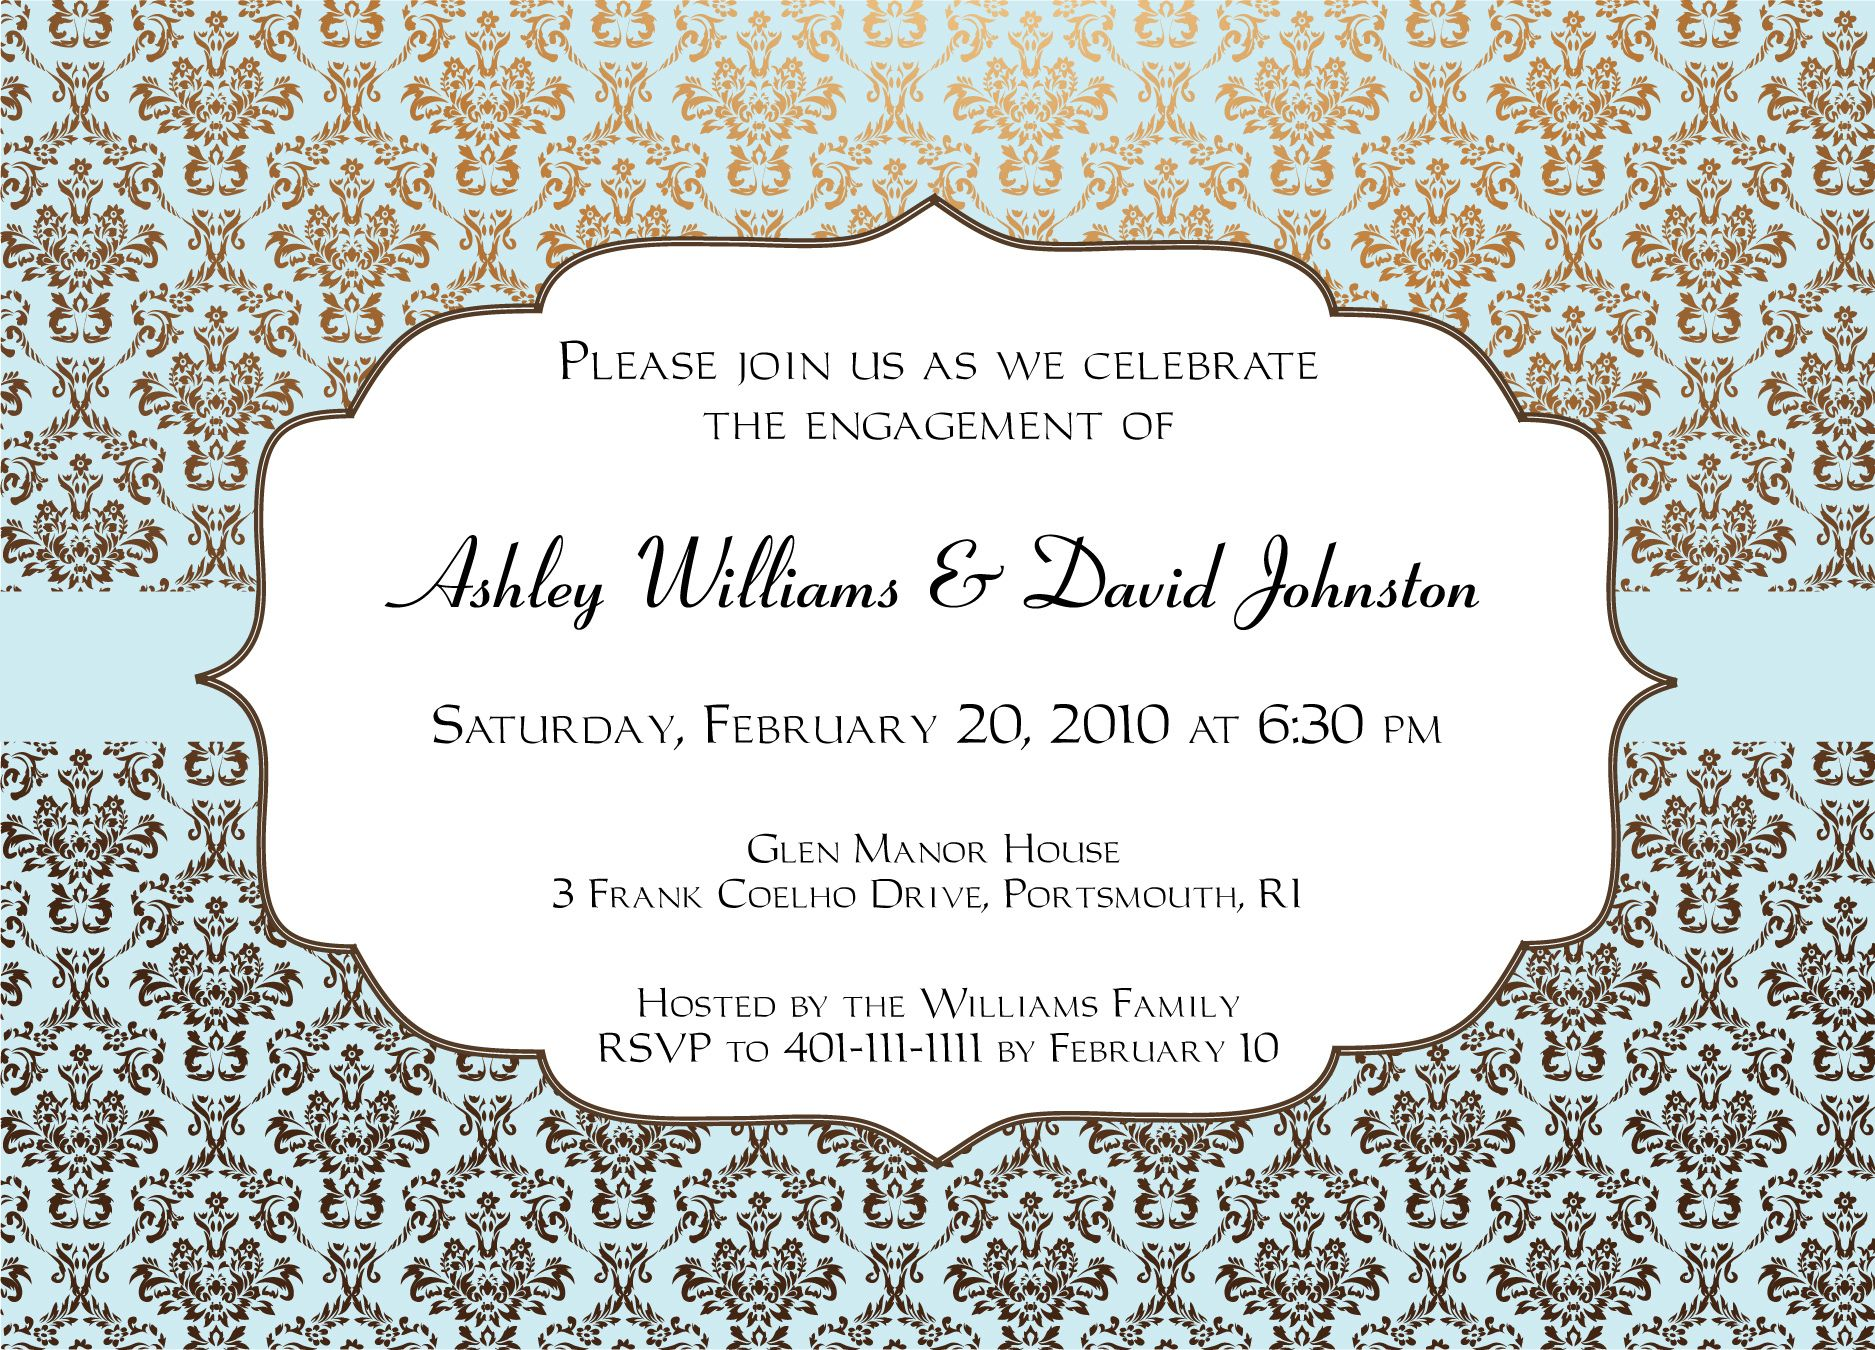 Party Invitation Card Template – Format of Engagement Invitation